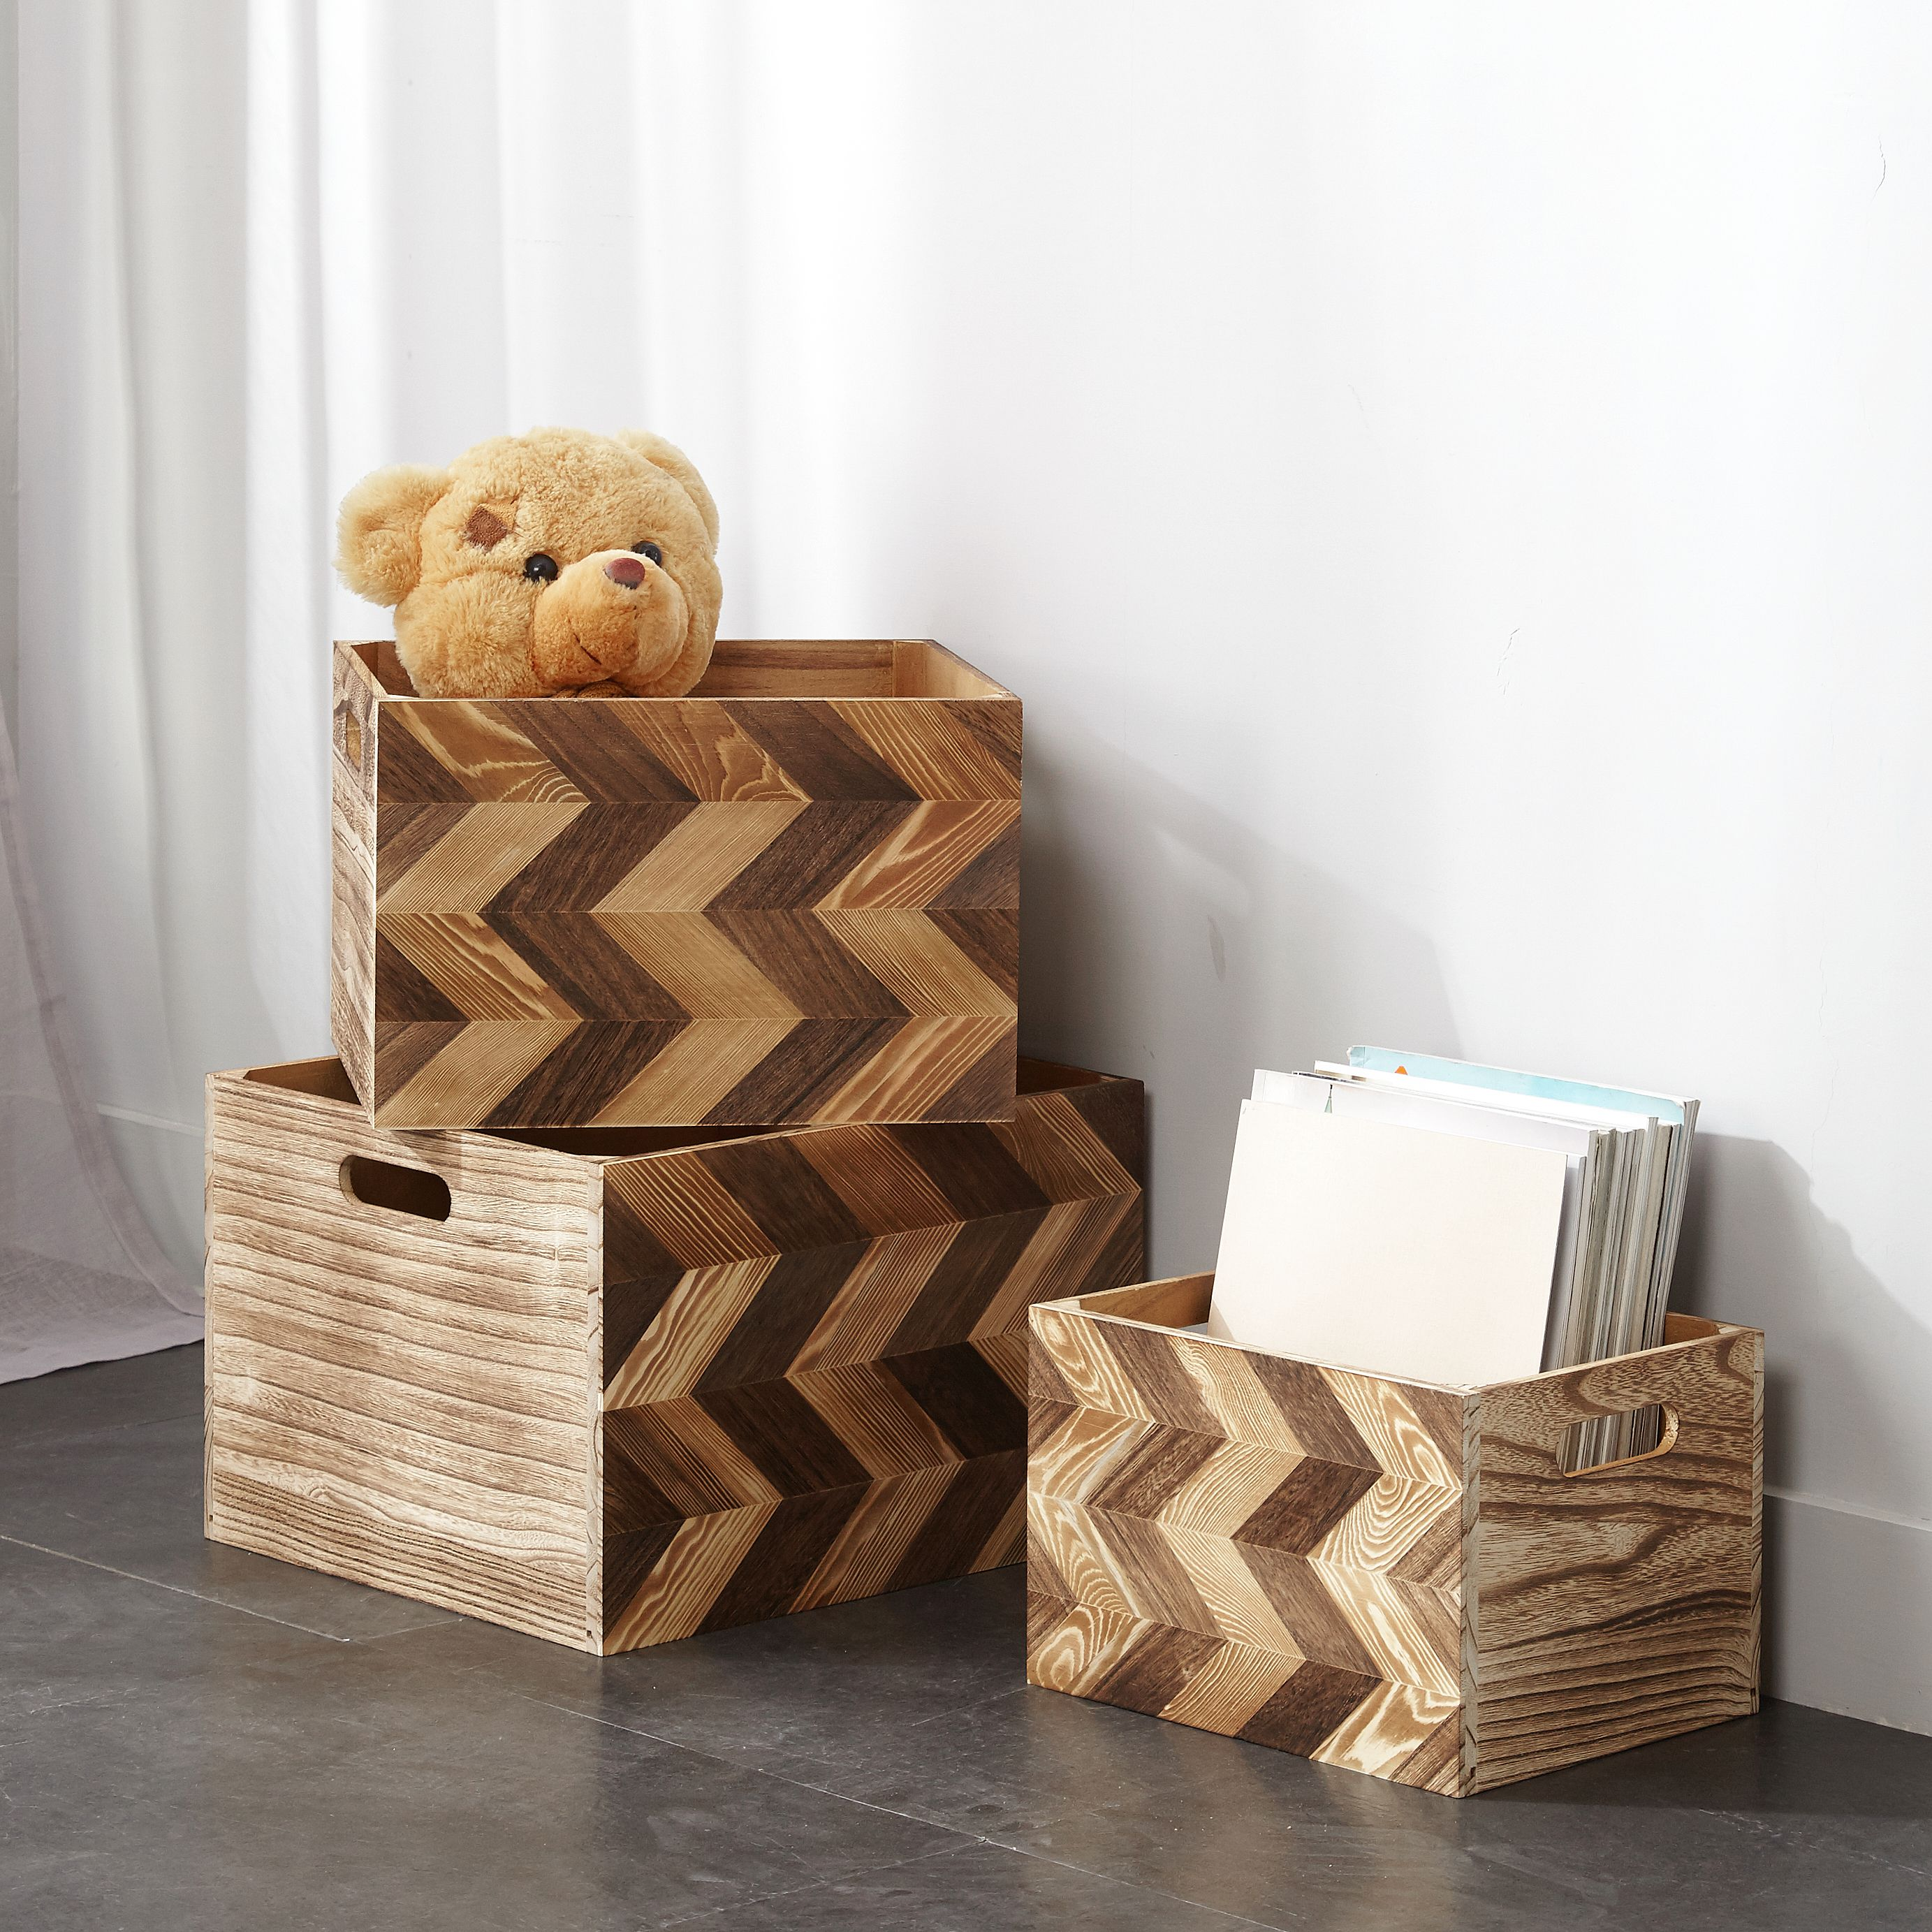 Chevron Wood Storage Crates, Set of 3